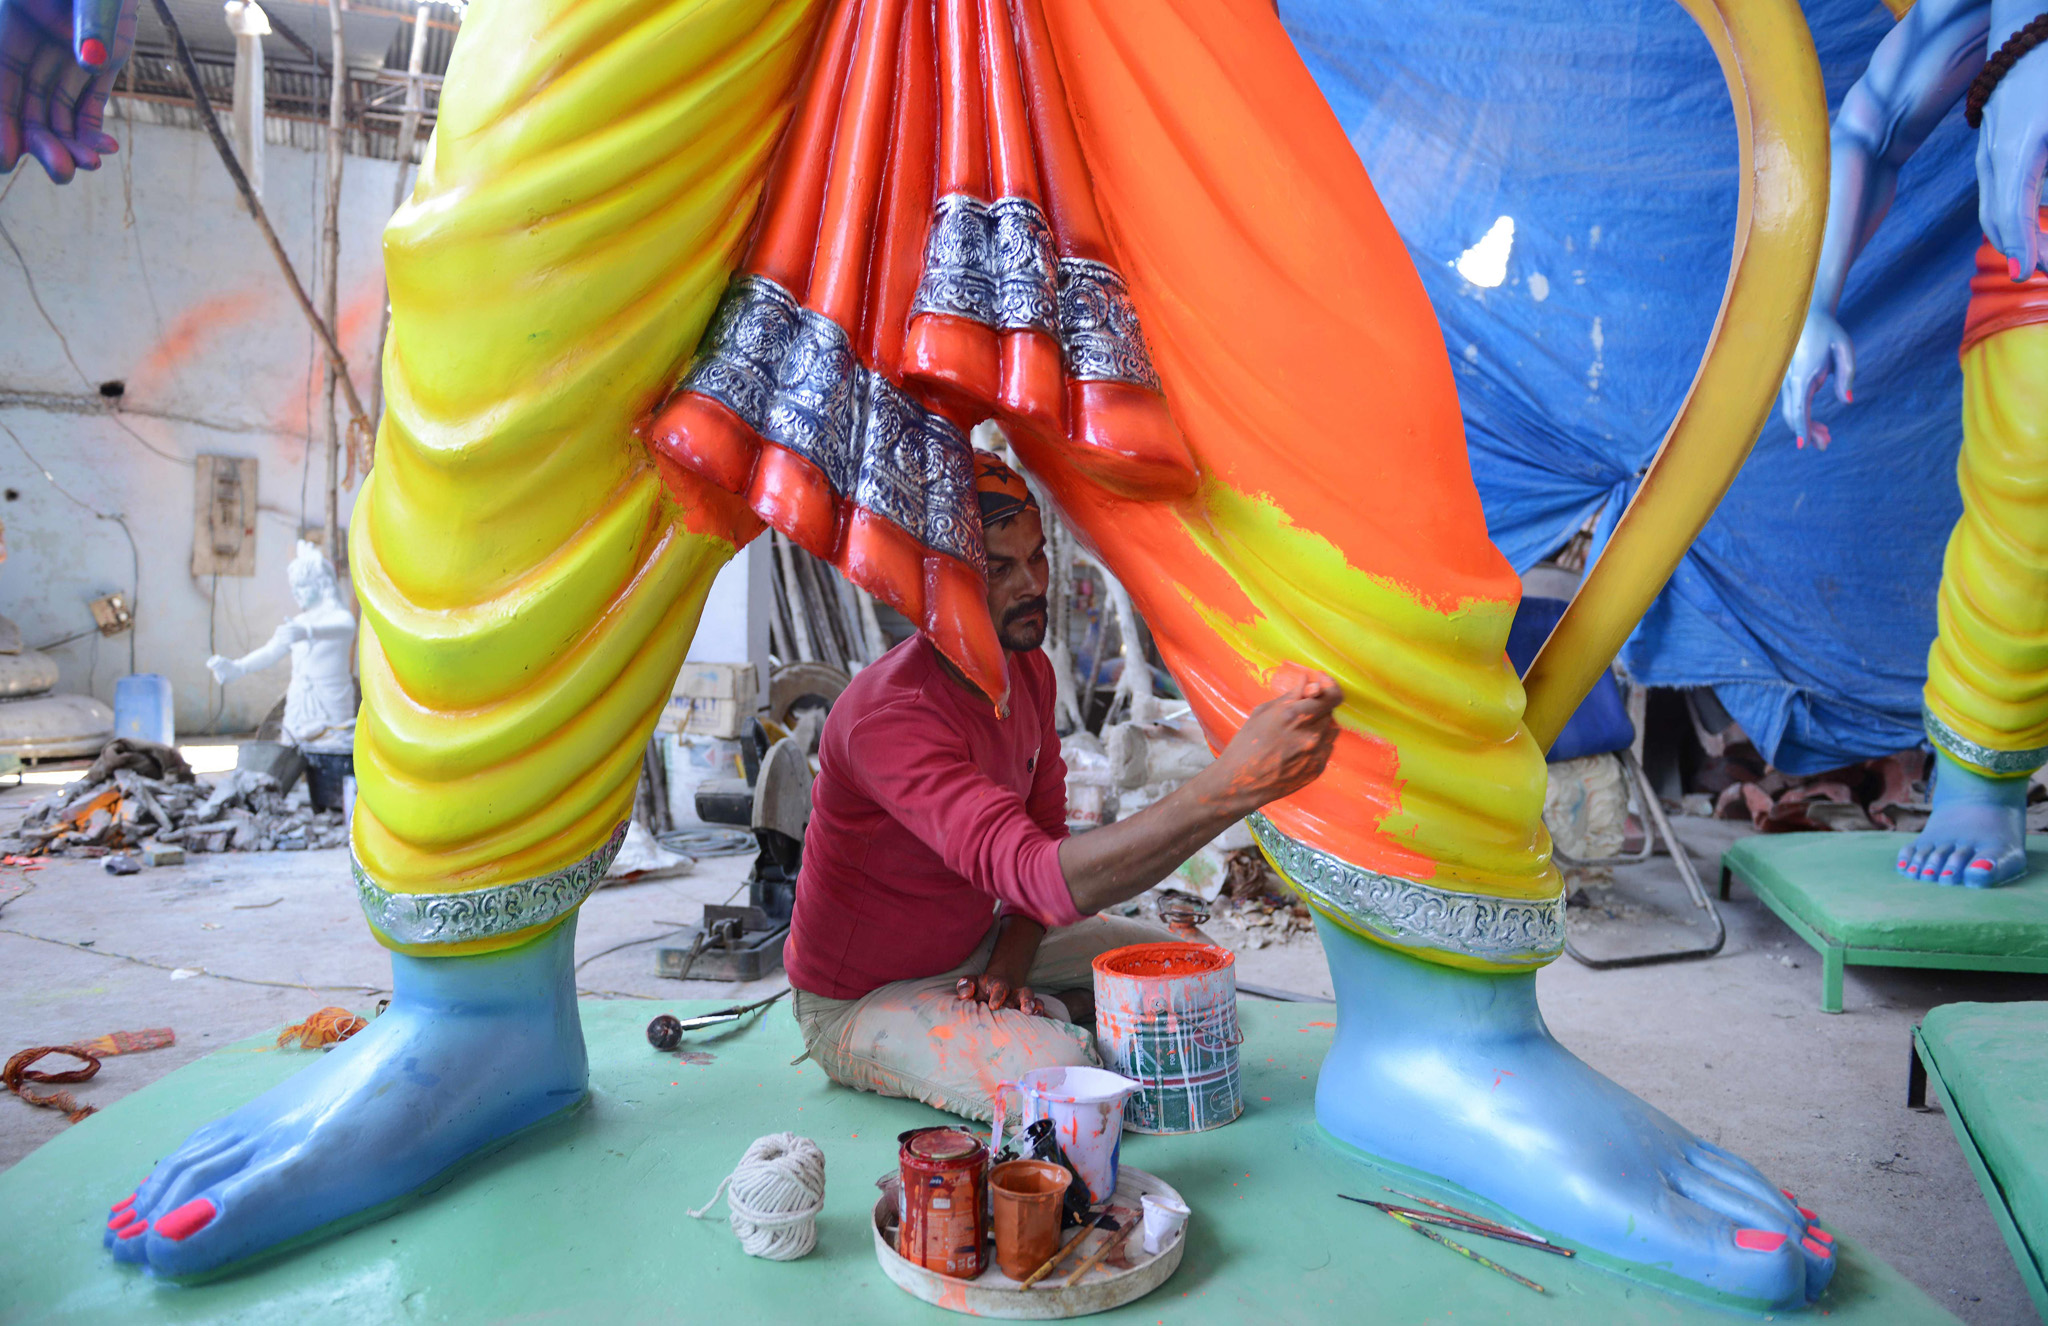 An Indian artist puts the final touches to statues of the Hindu God Lord Ram ahead of the Sri Rama Navami Festival at a workshop in Hyderabad